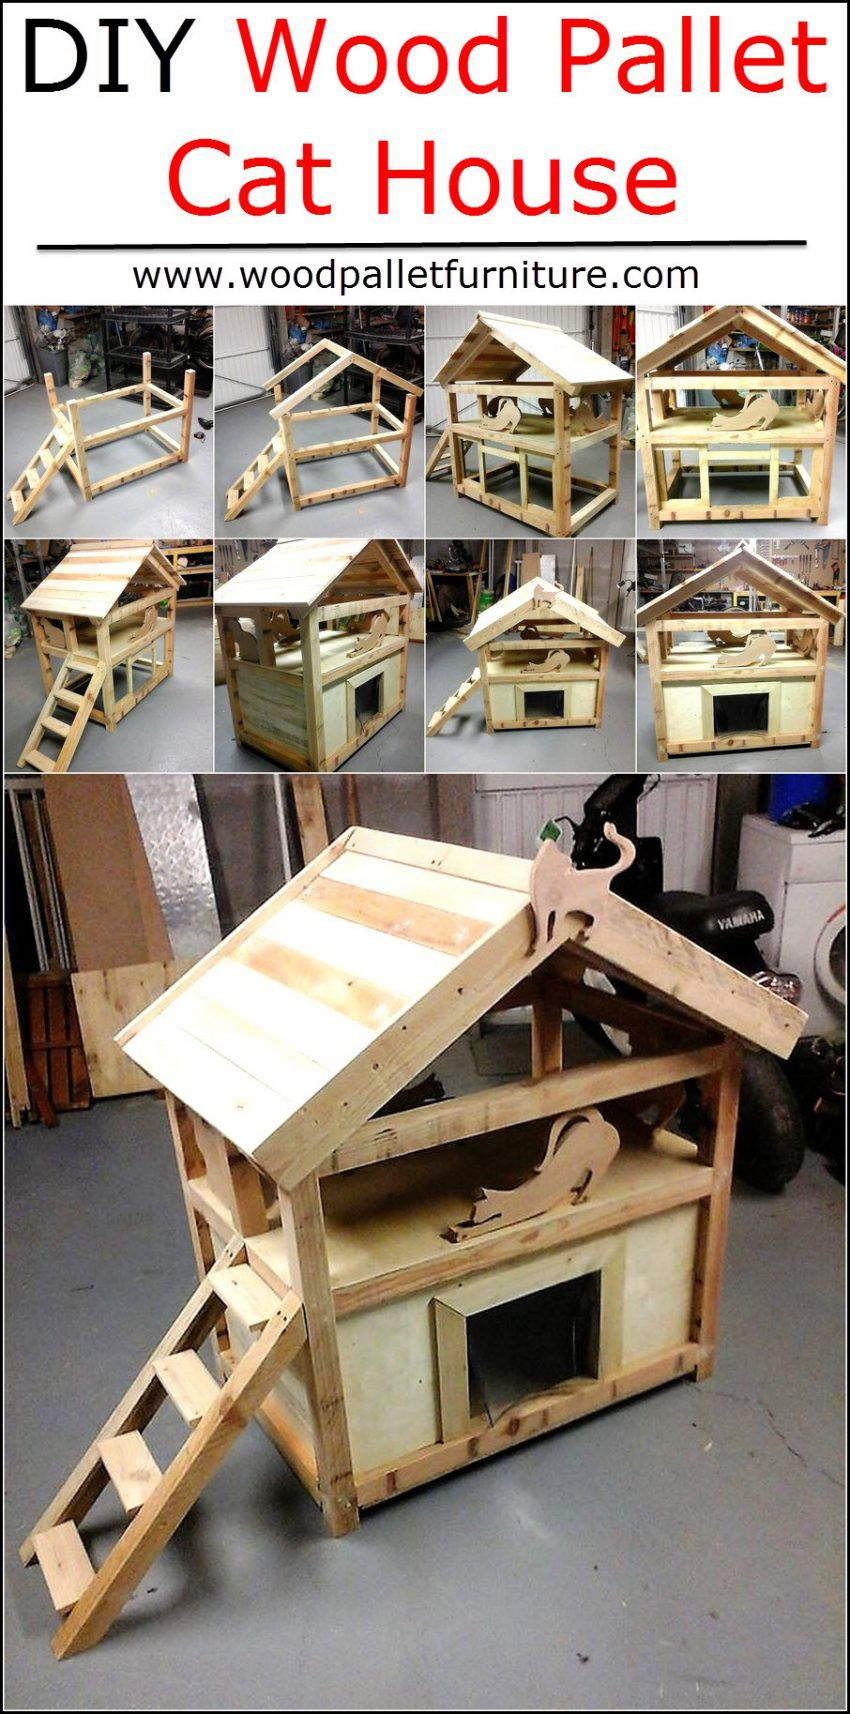 Diy Wood Pallet Cat House Wood Pallet Furniture Cat House Diy Outdoor Cat House Cat House